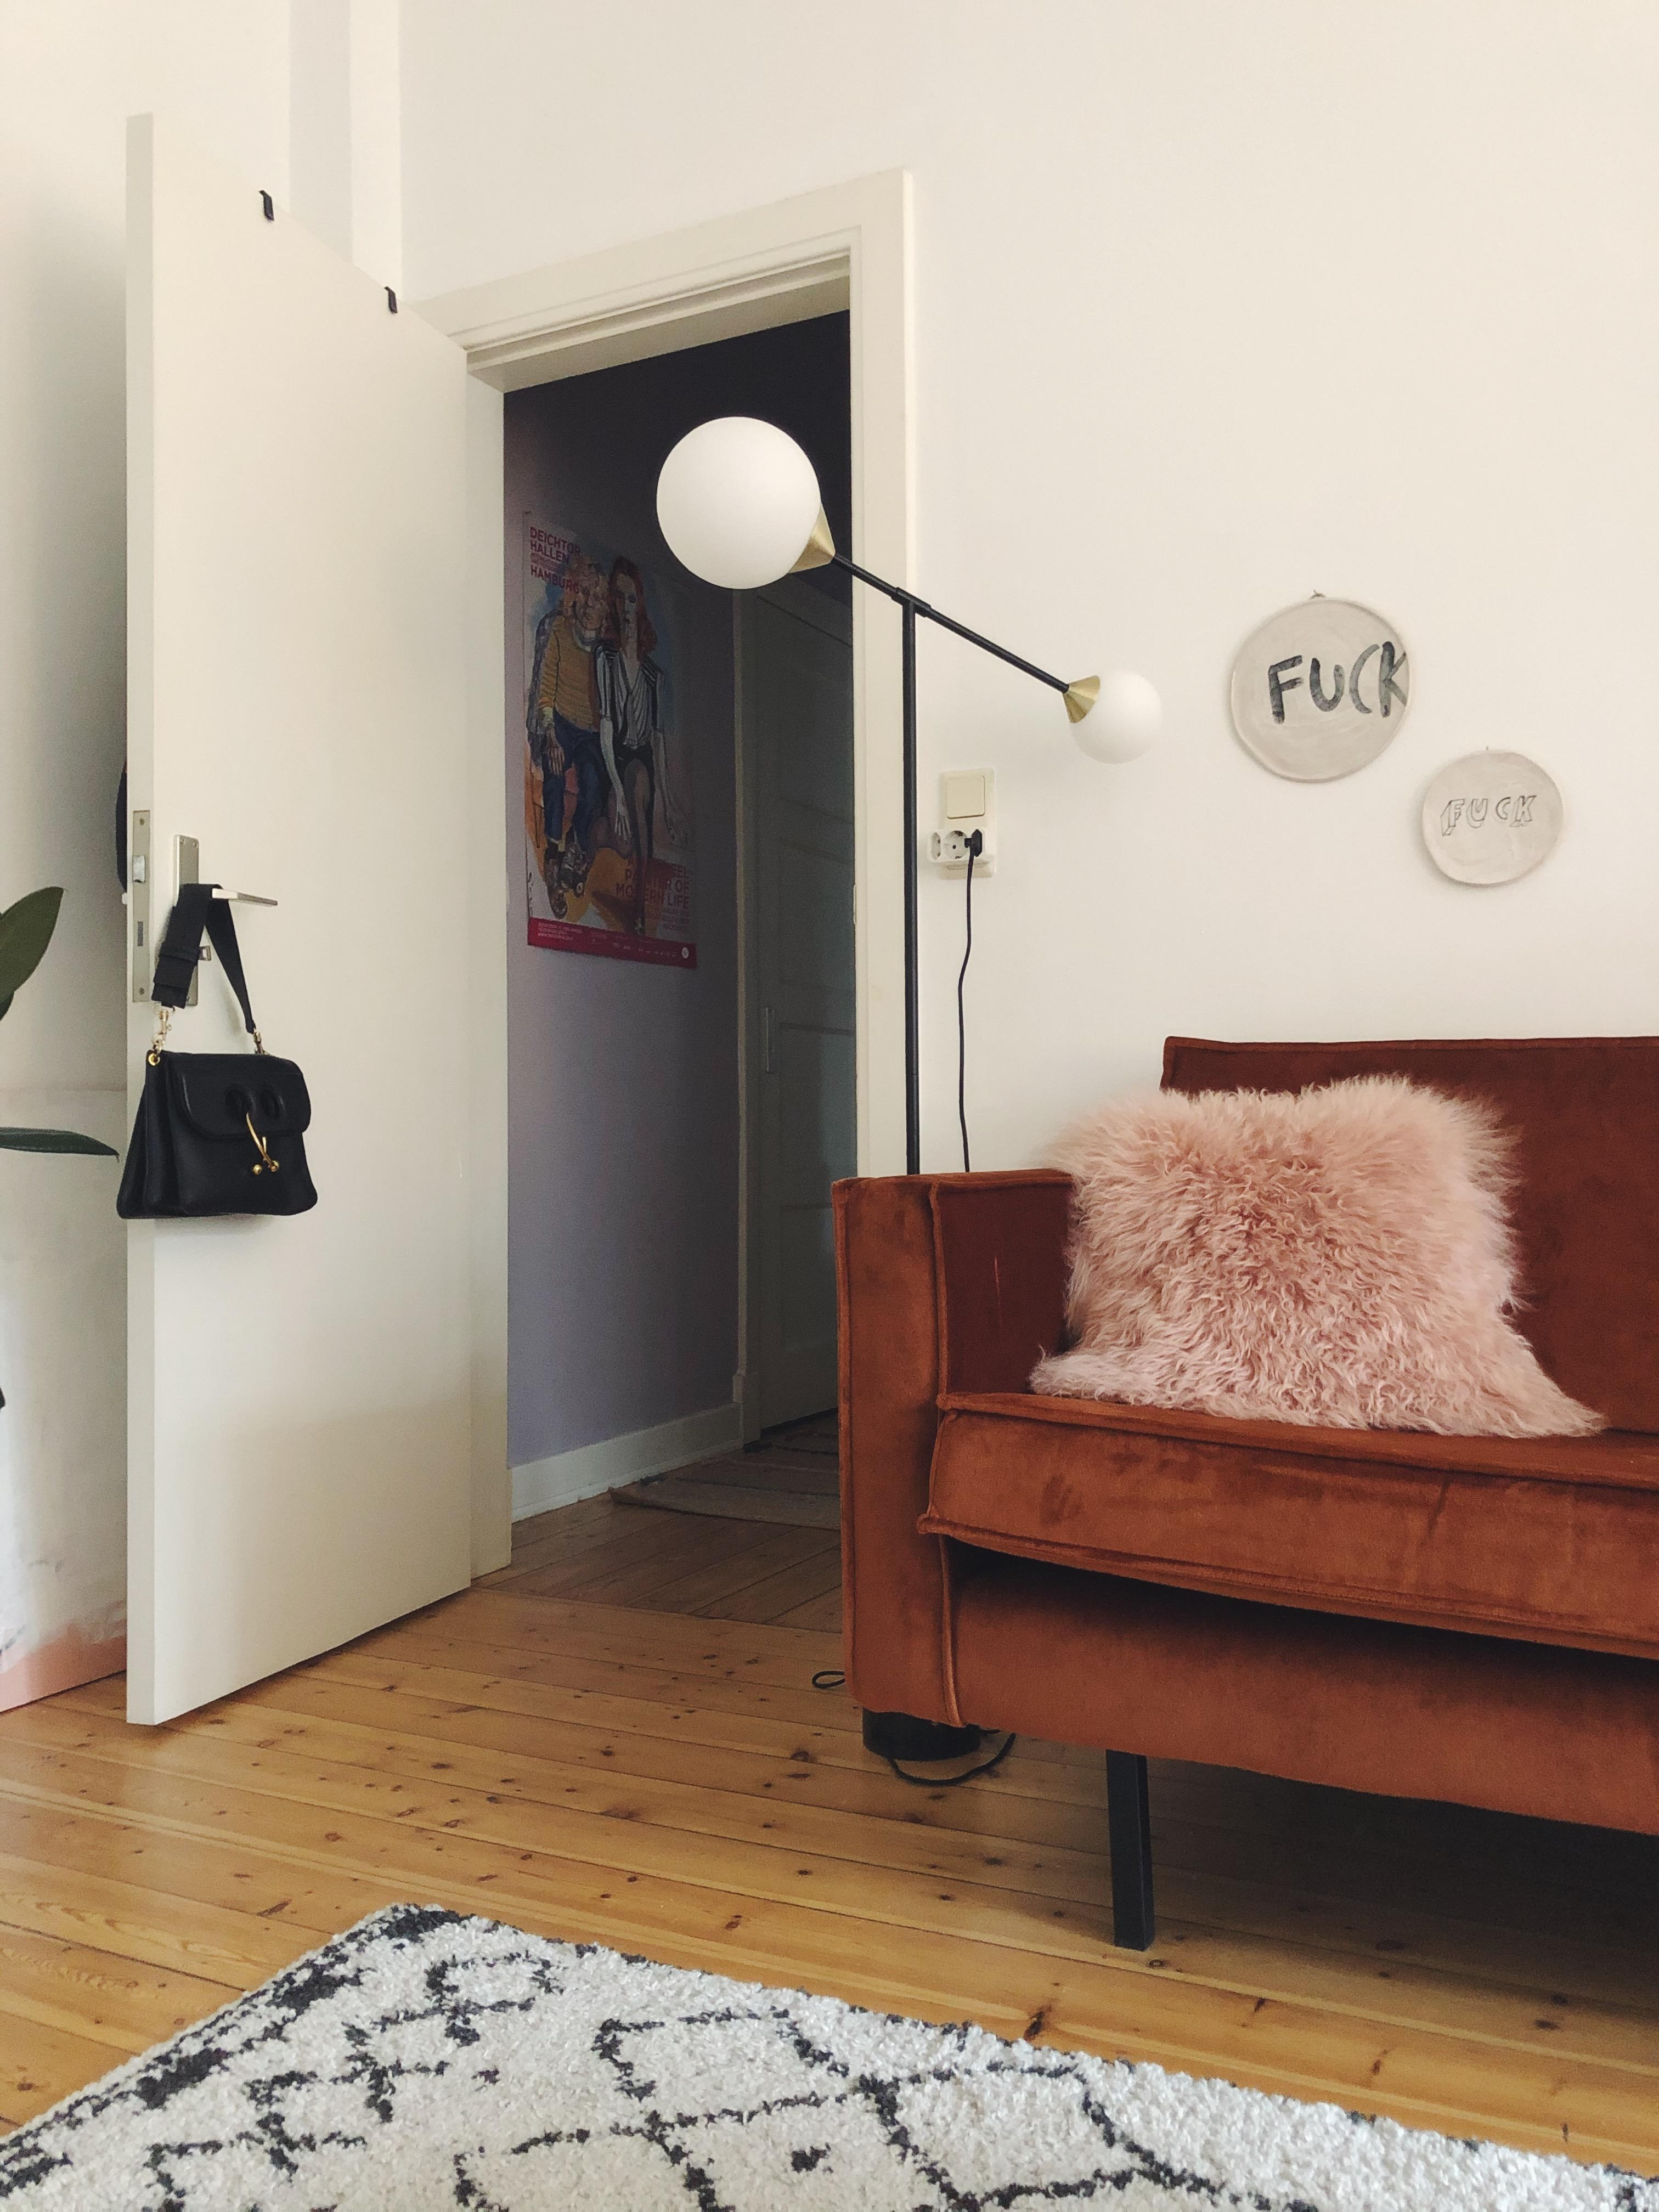 sundays at home ✨ #samtsofa #hamburg #hh #altbau